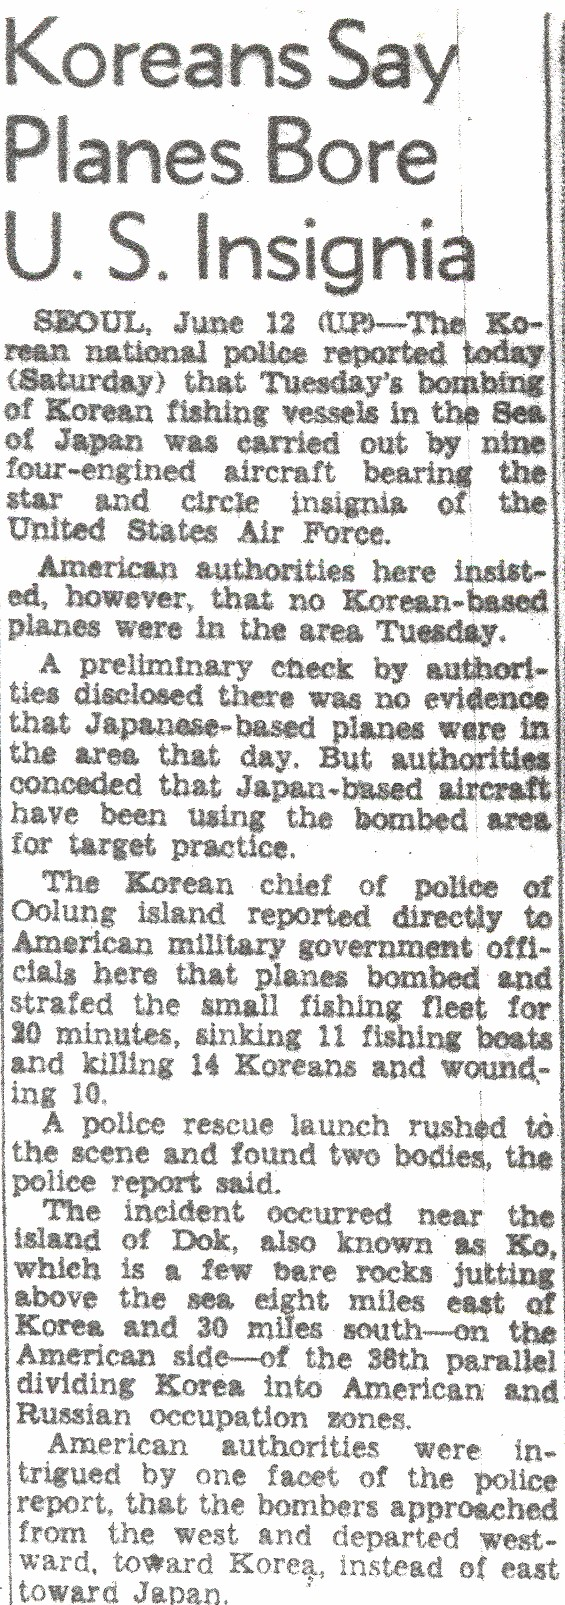 San Francisco Chronicle article on the June 8th bombing.  Reported by the United Press from Seoul on June 12th.